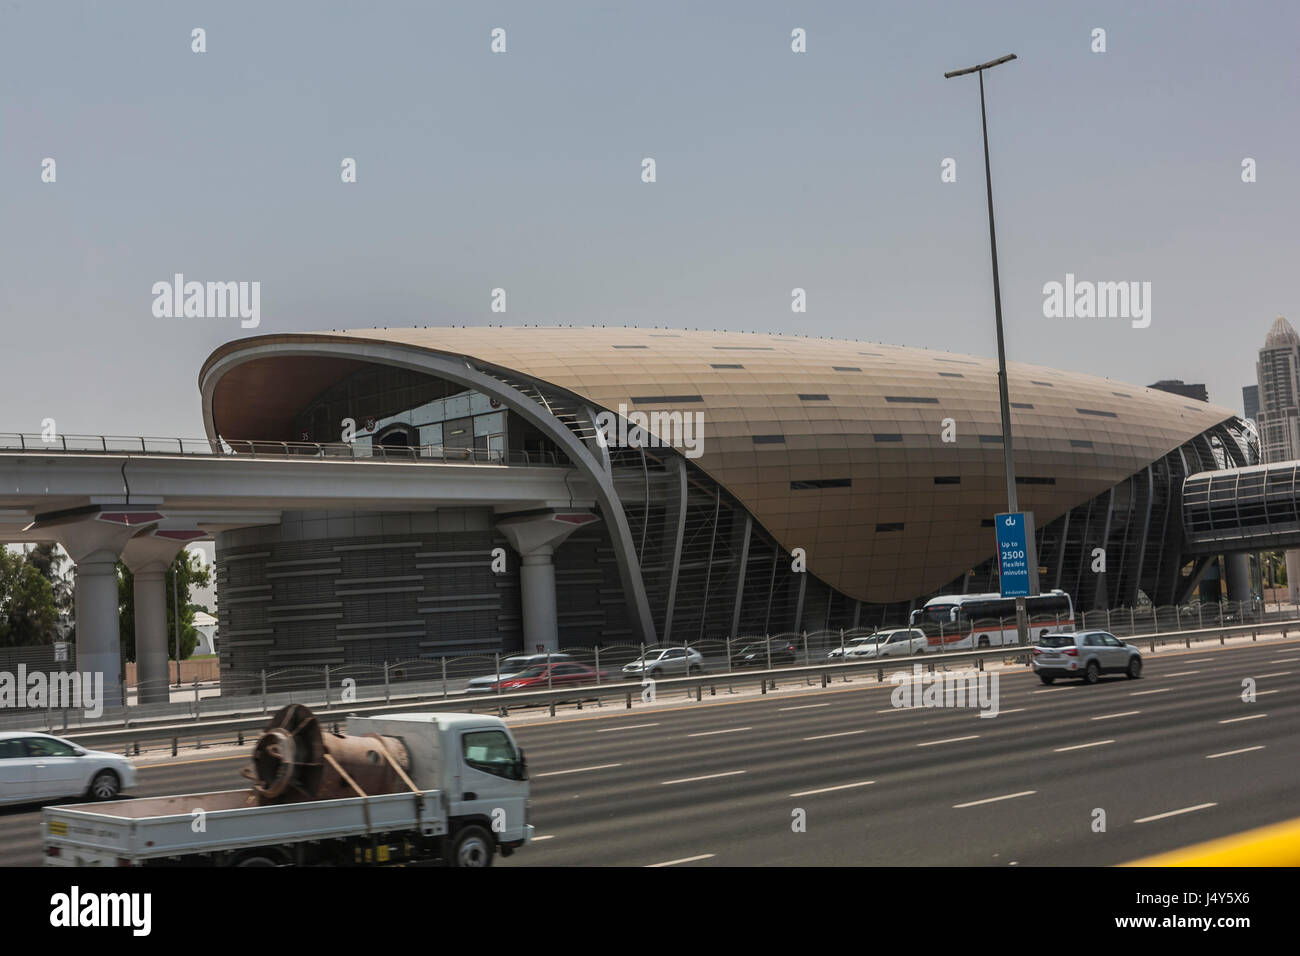 TRAIN STATION,DUBAI, UAE-16TH AUG 2015:-Dubai hasstations every few hundred meters, they are all aiconditioned Stock Photo